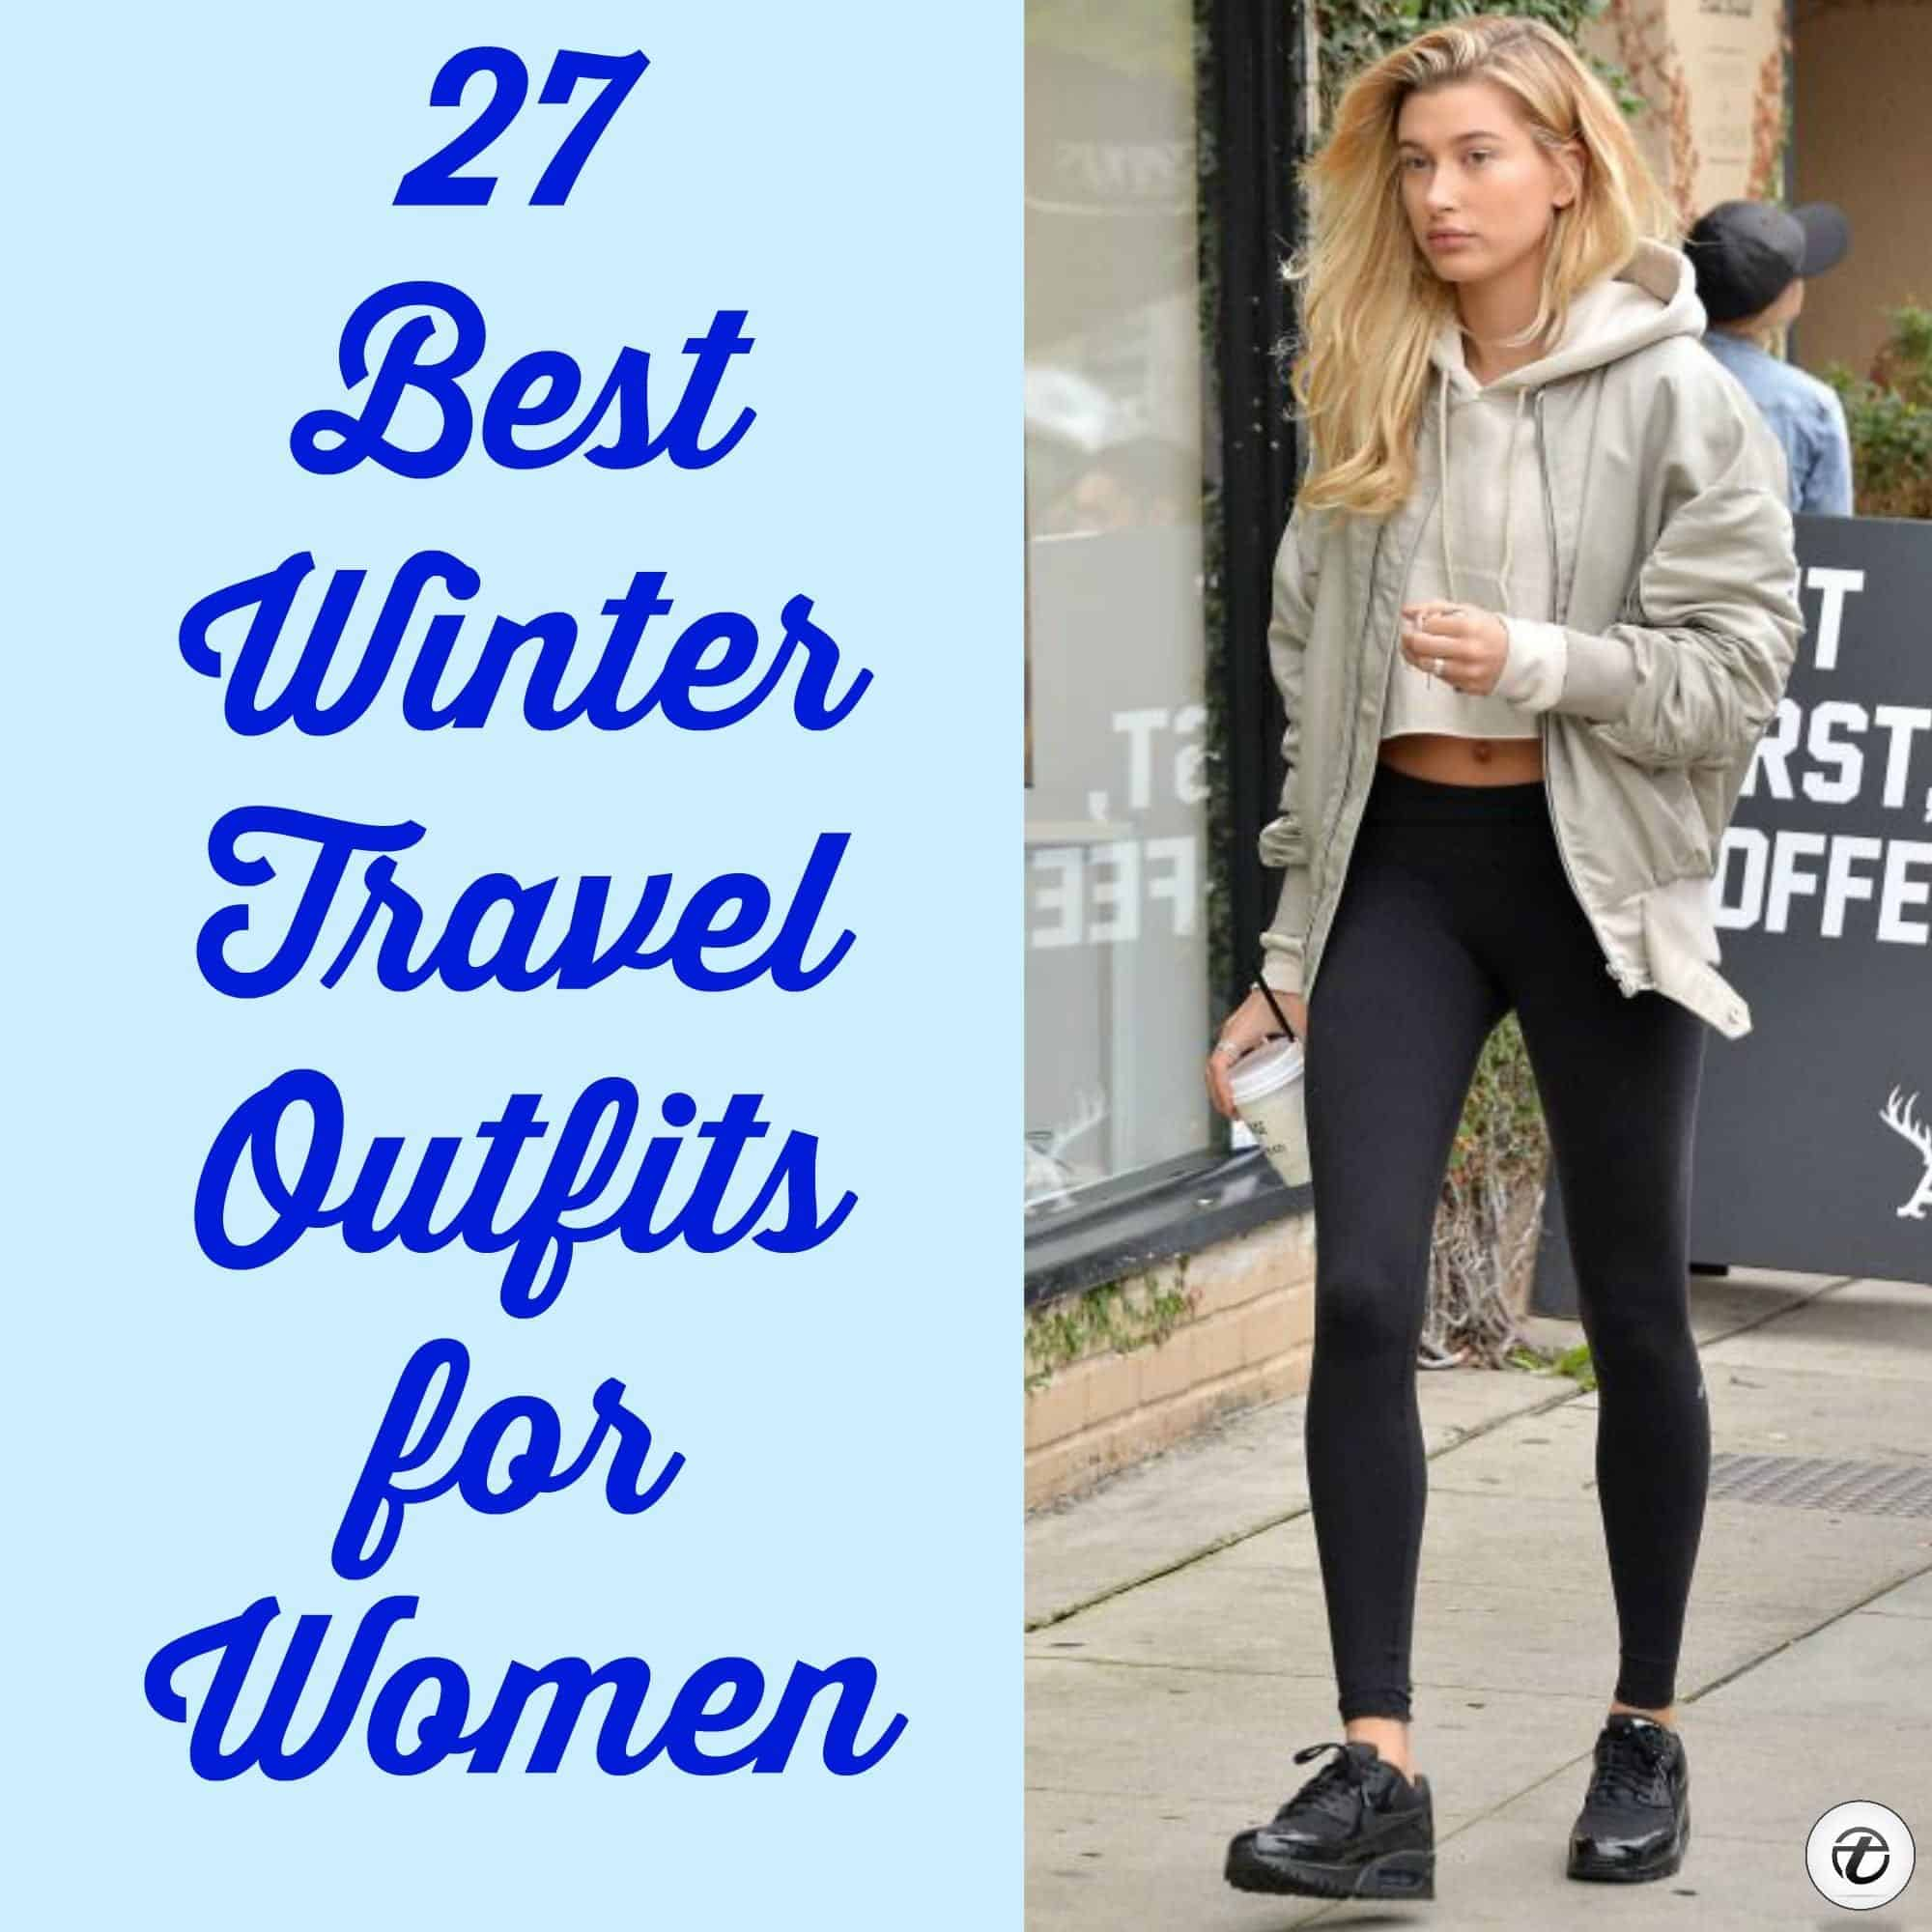 23159b605f6d8 27 Best Winter Travel Outfits for Women Trending these Days